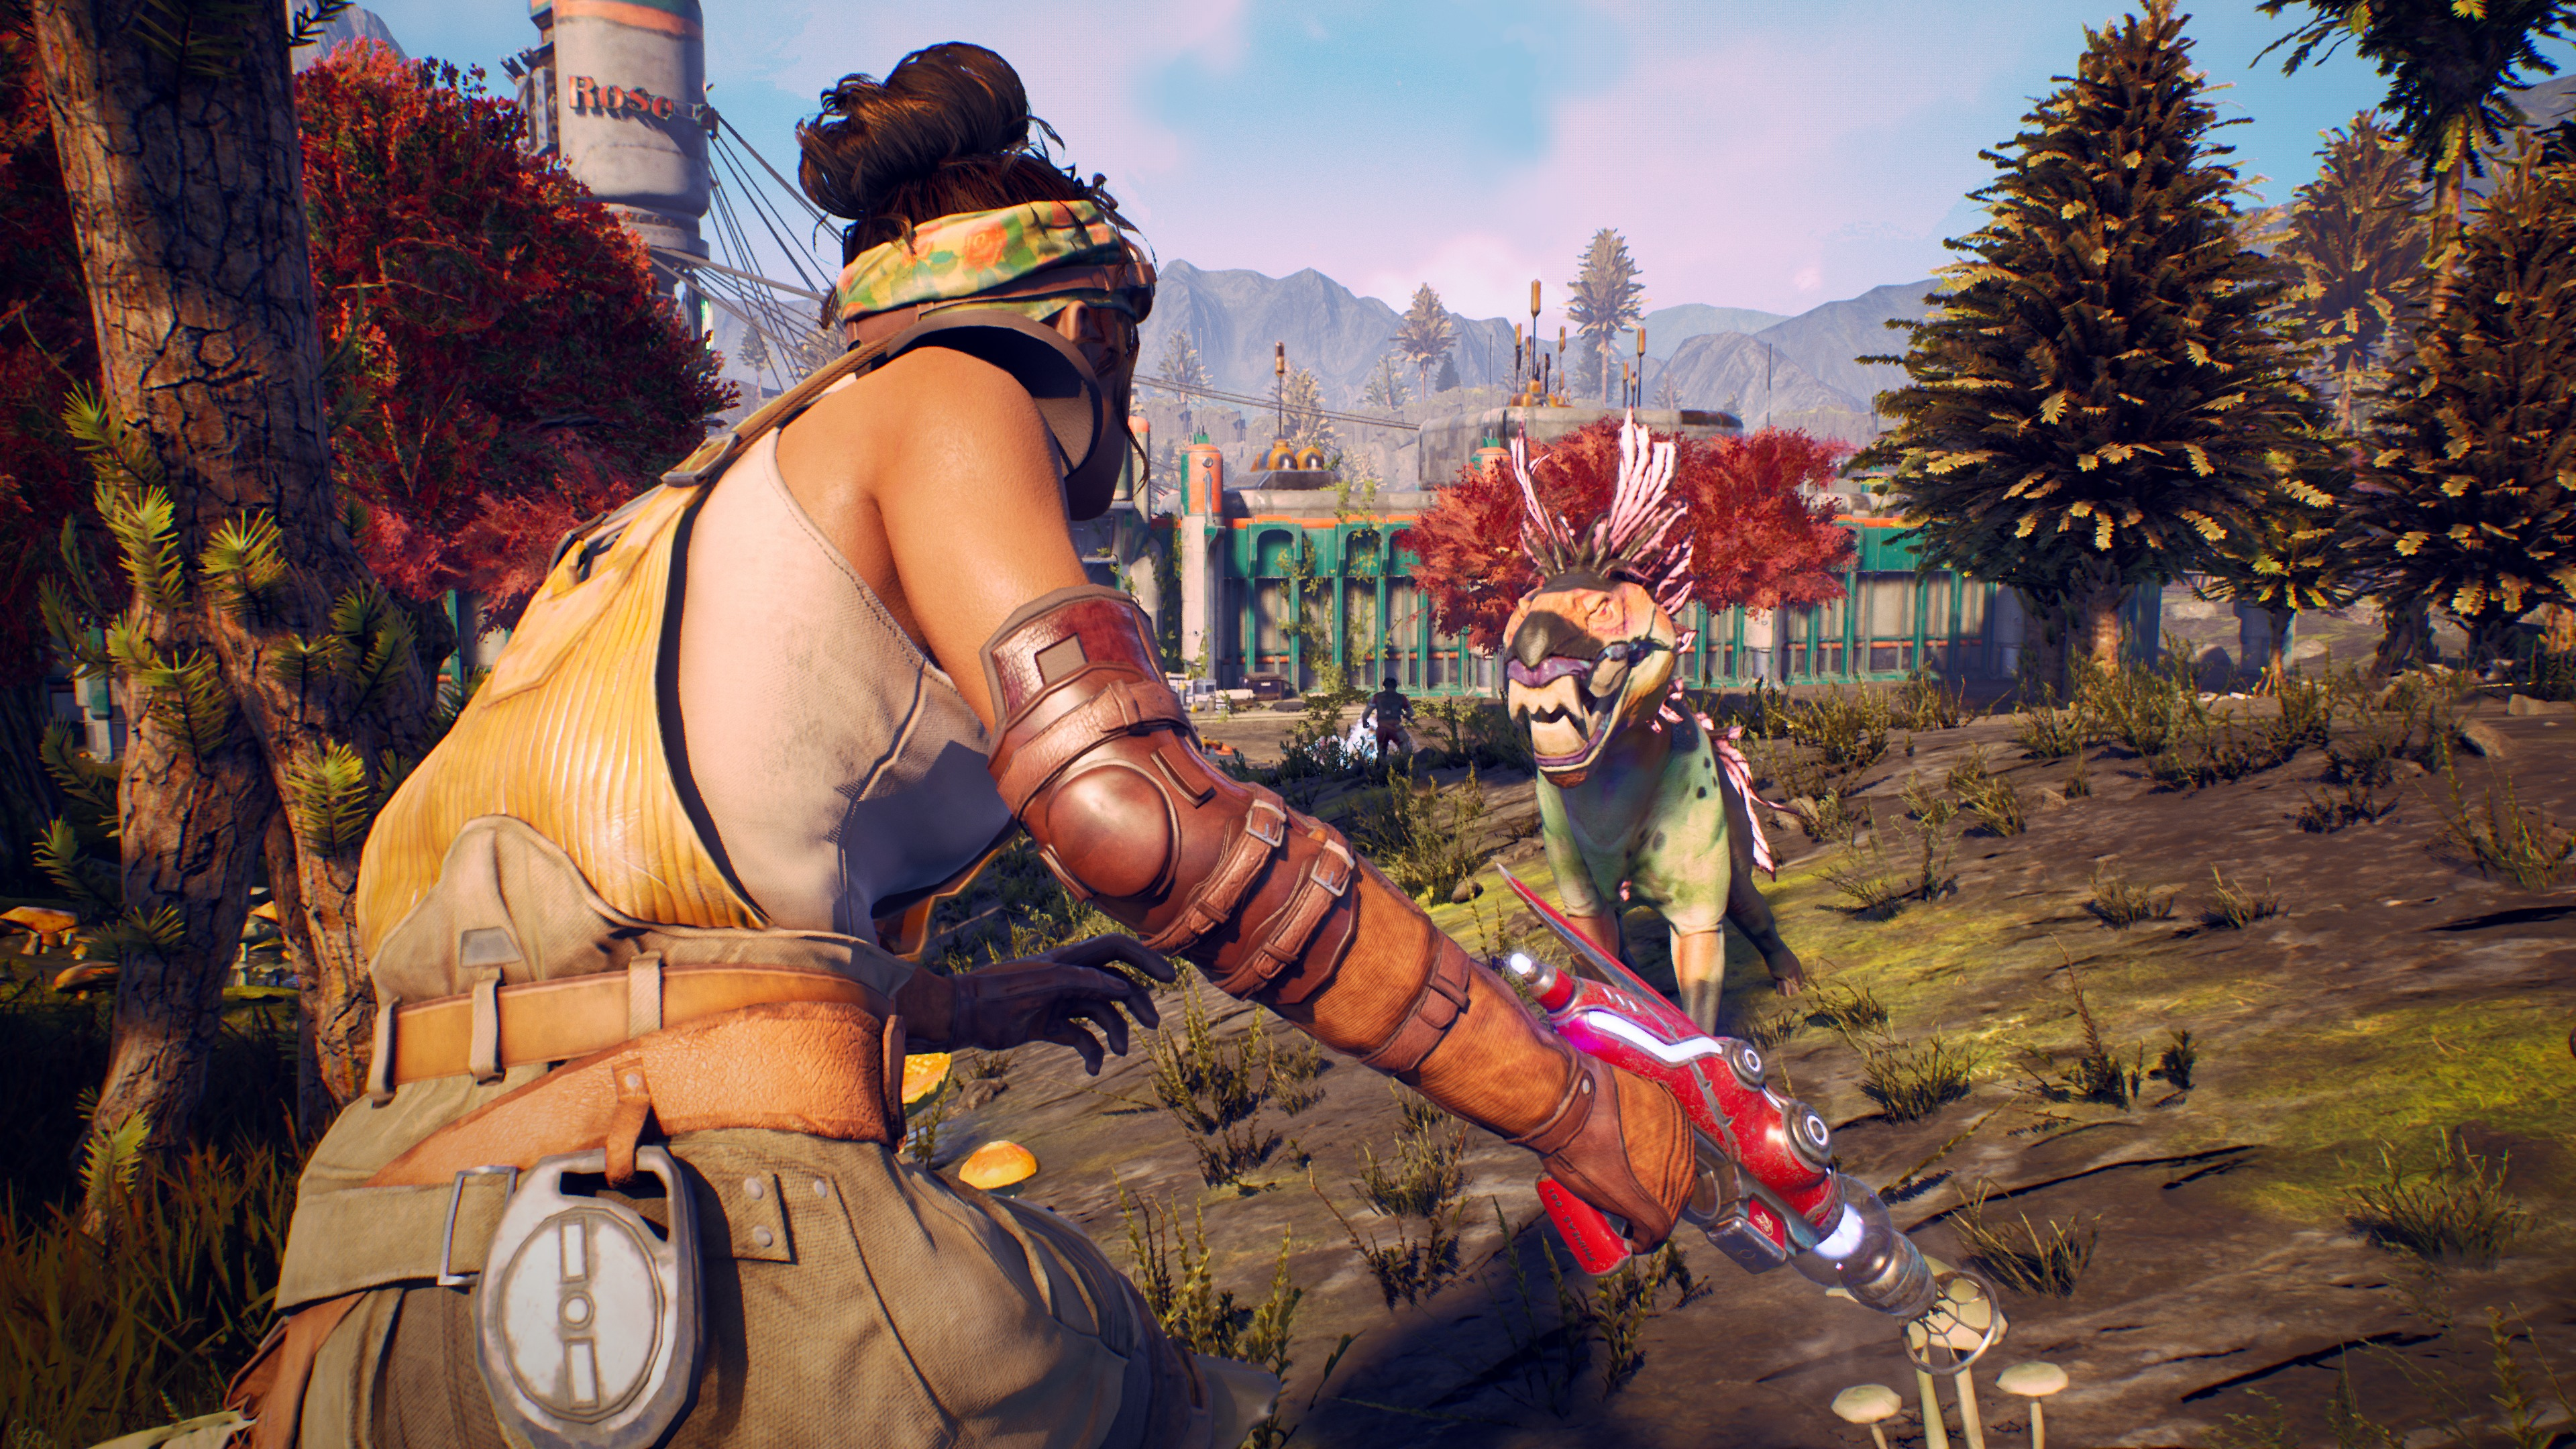 The Outer Worlds Hands-On Preview: Promising First Look at Obsidian's Next Title